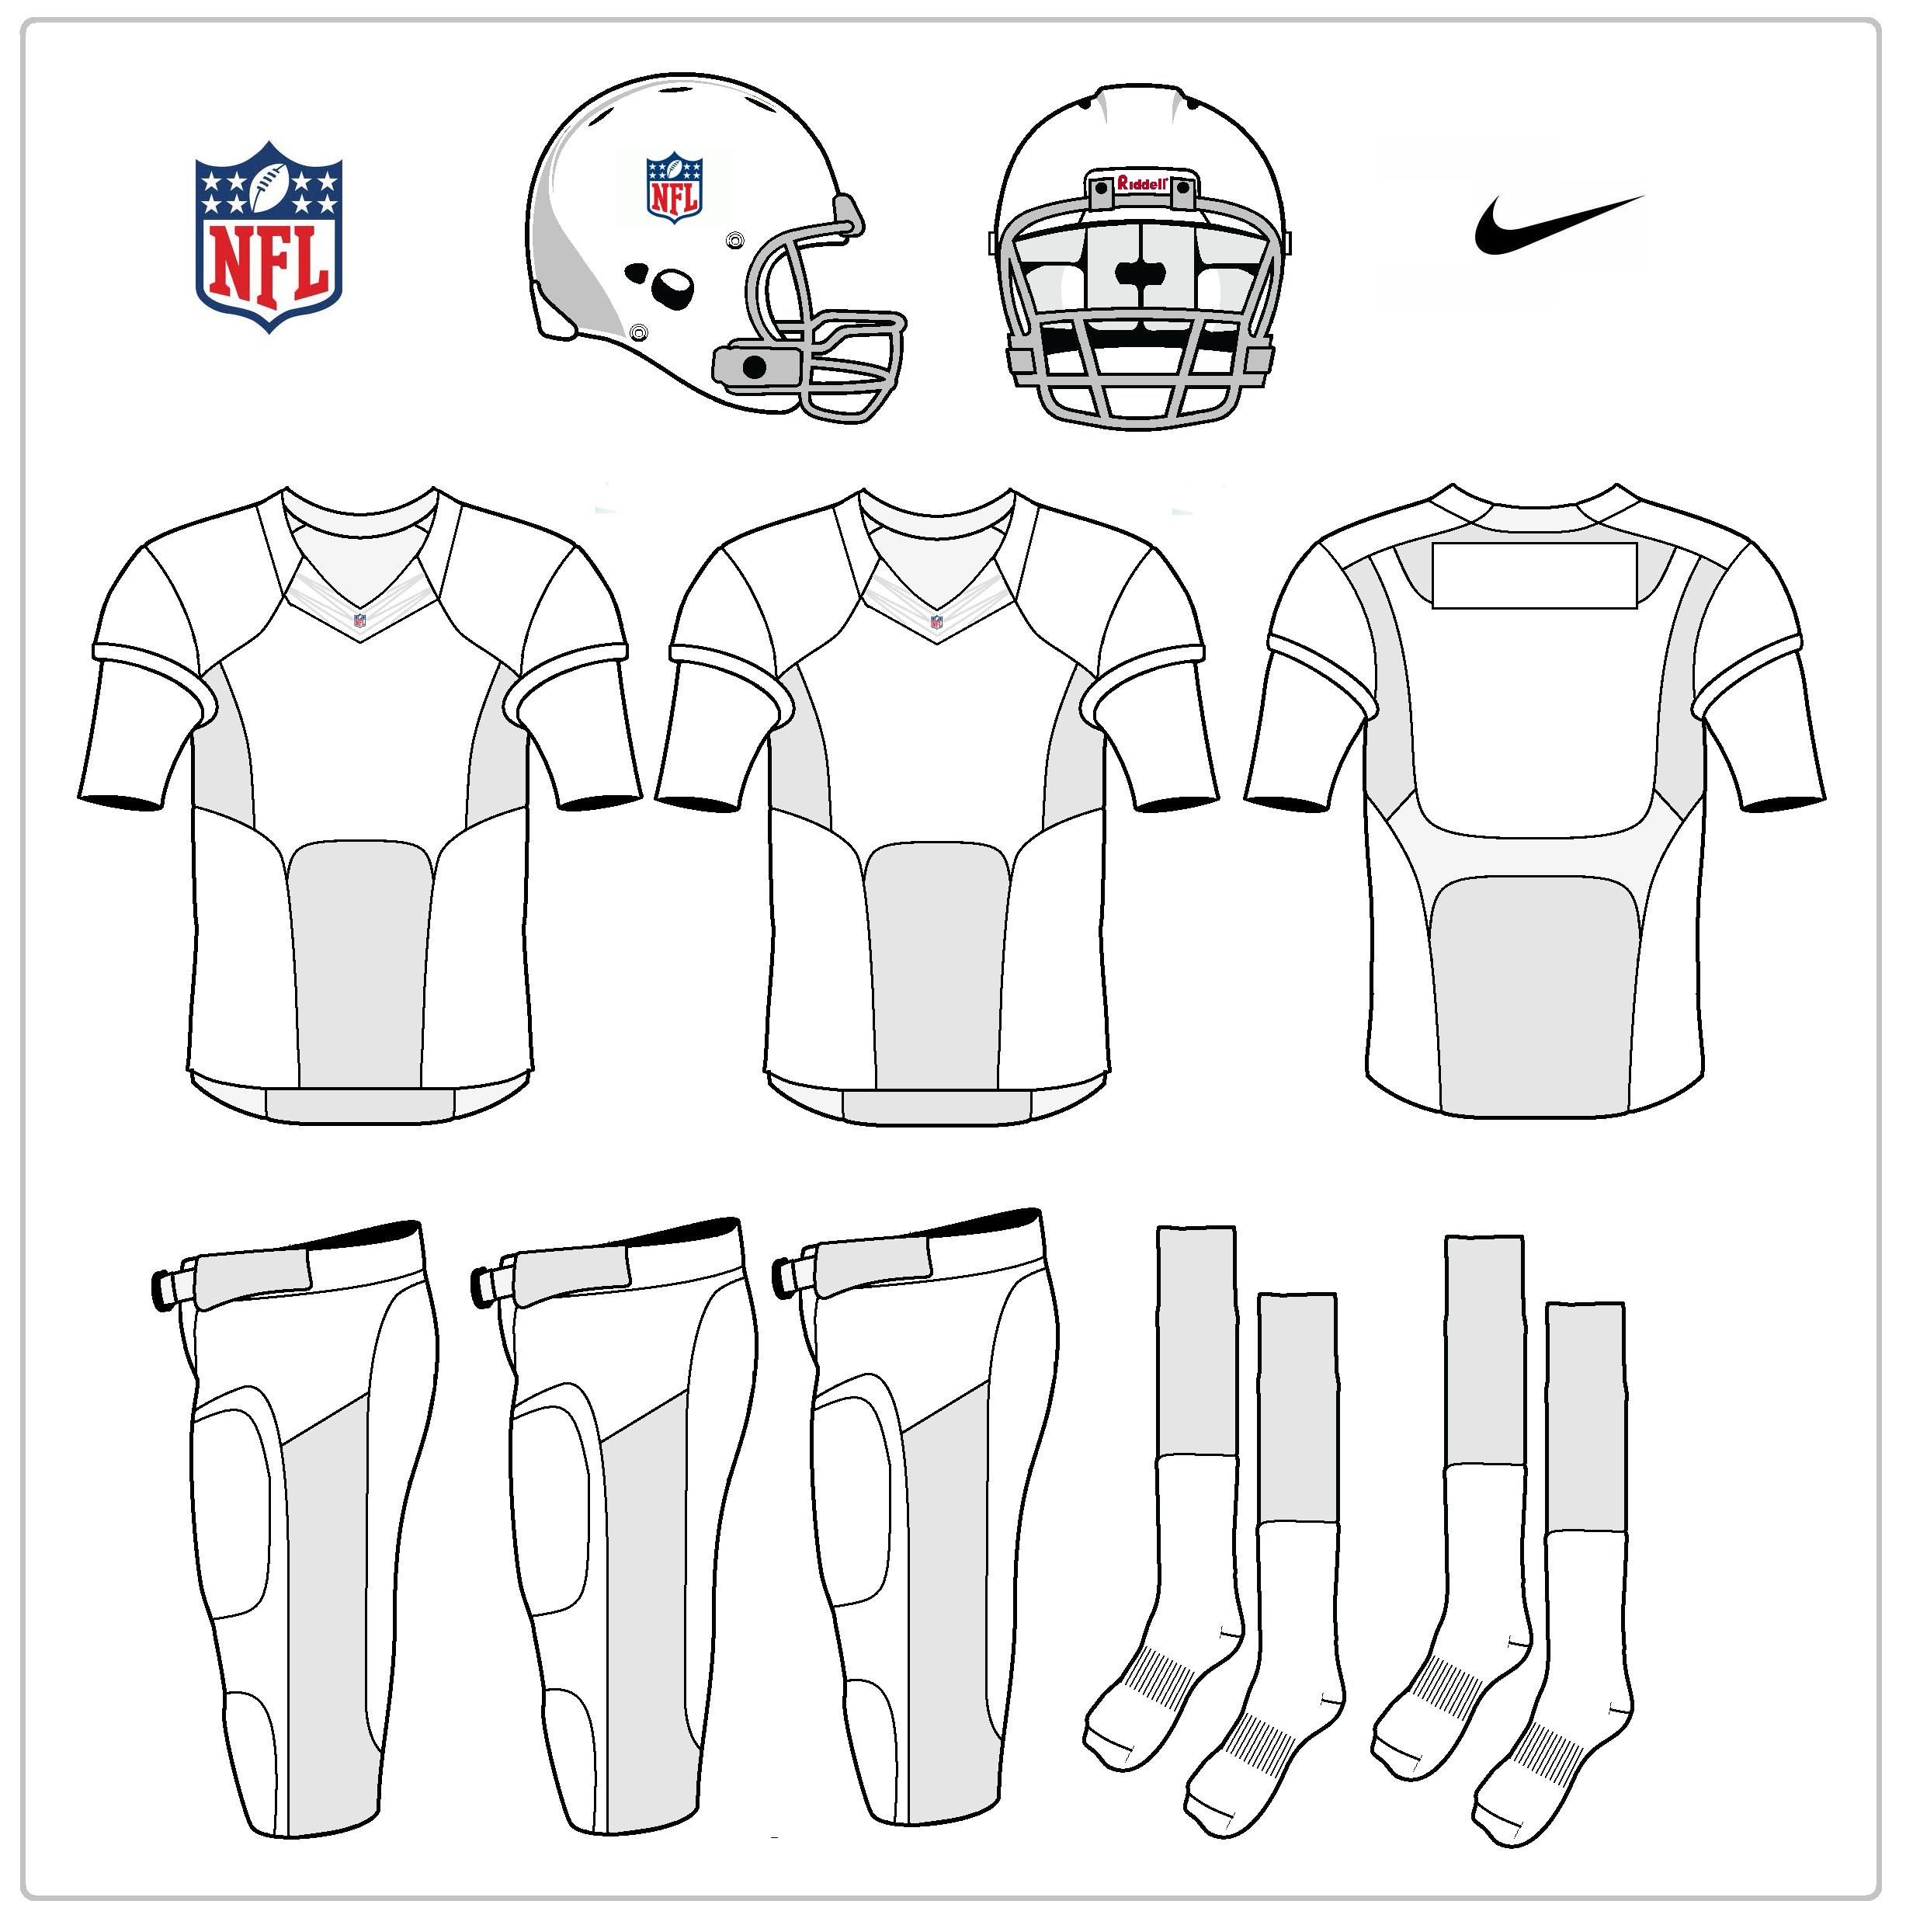 Nike Football Jersey Template Paint Users Paradise 2 0 Page 19 Concepts Chris